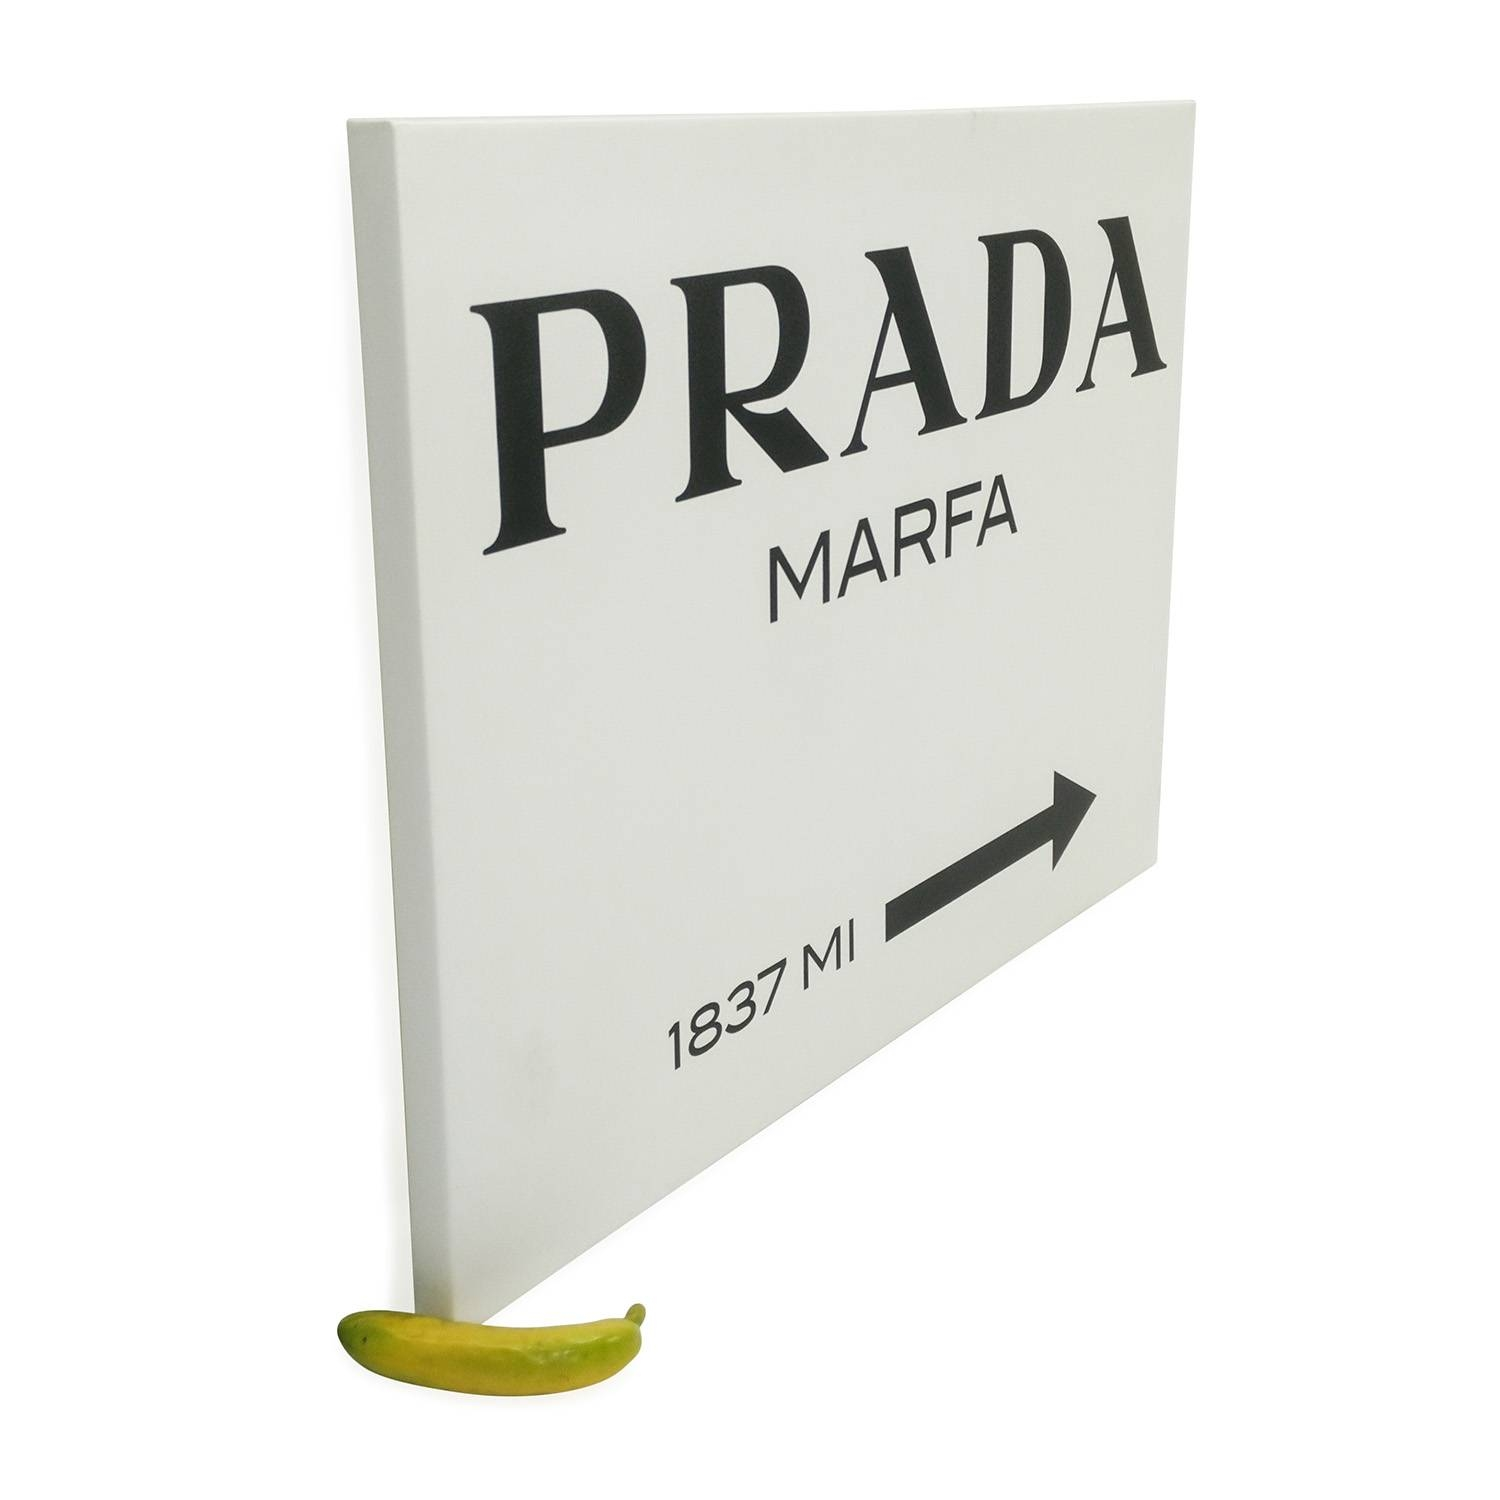 90% Off – Prada Marfa Canvas From Gossip Girl / Decor Intended For Most Recent Prada Wall Art (View 20 of 25)